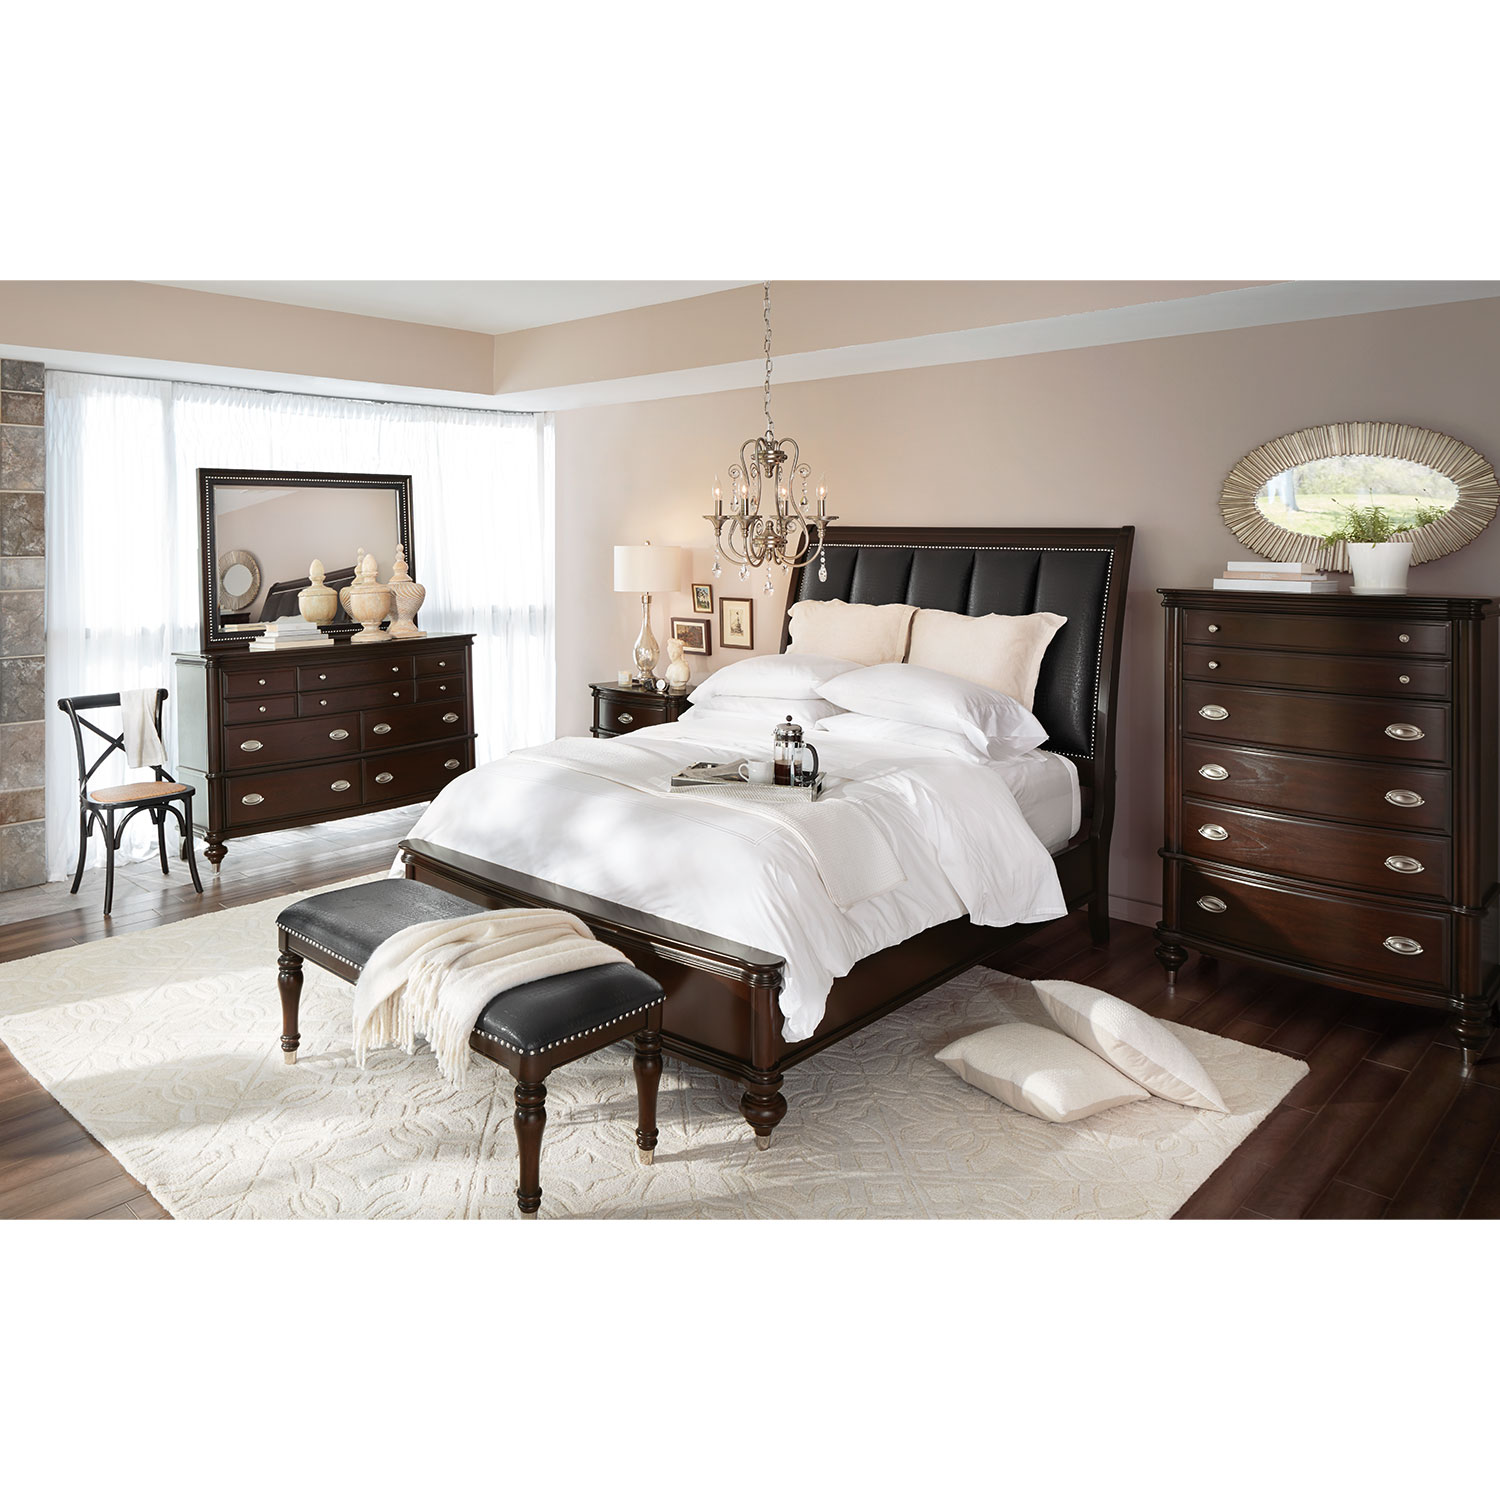 Esquire 6 Piece King Bedroom Set   Merlot